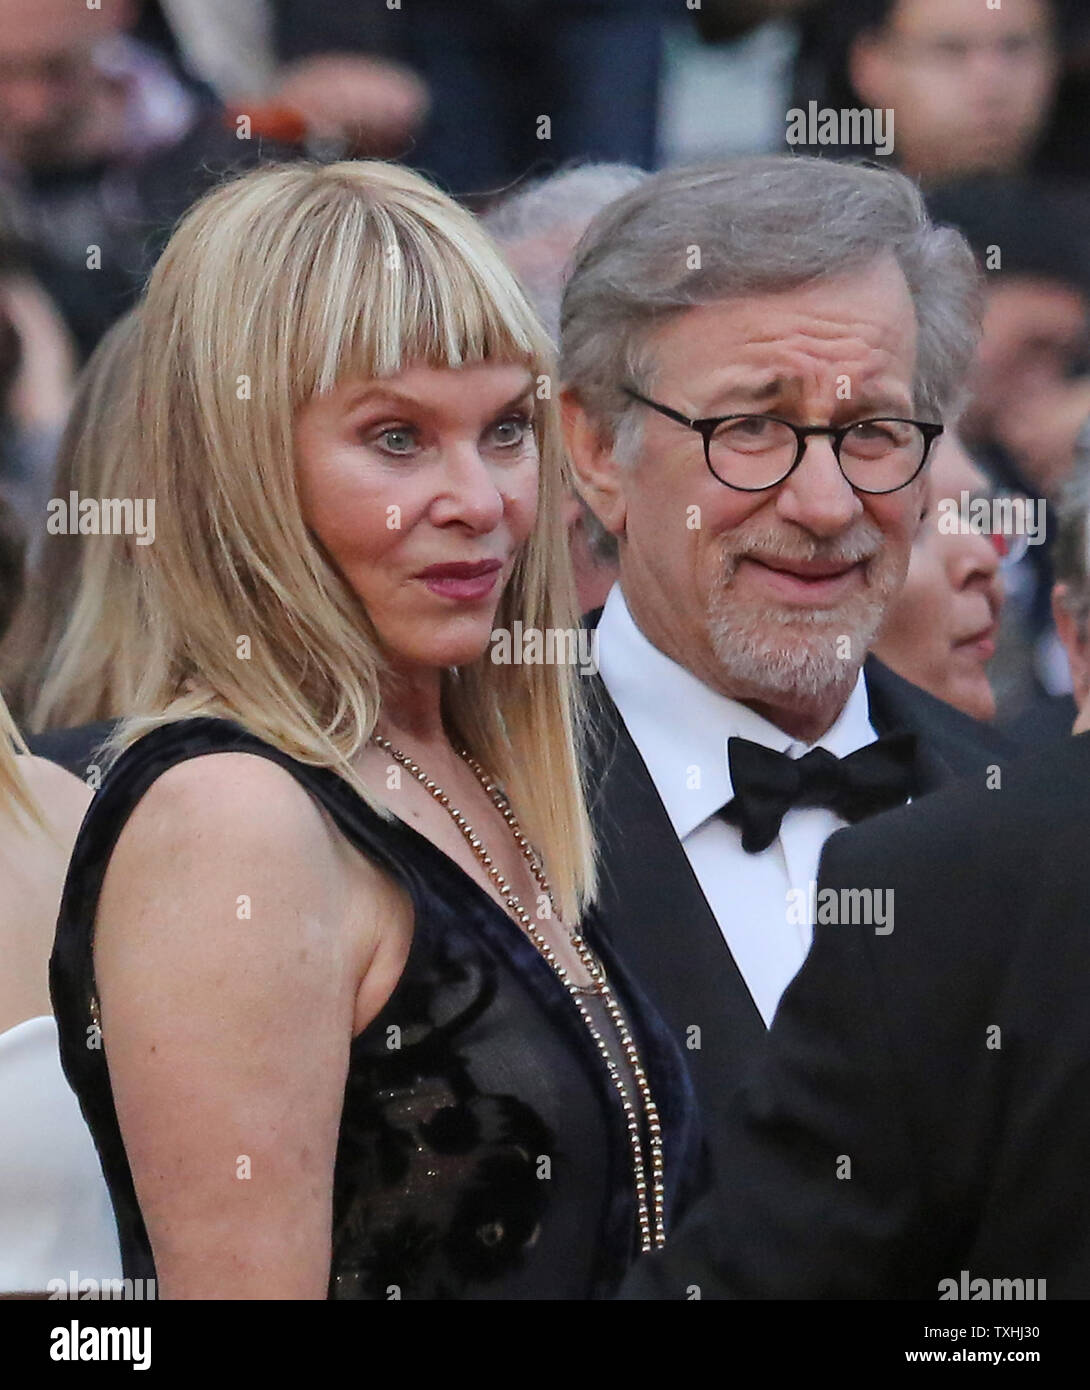 Kate Capshaw And Steven Spielberg Arrive On The Red Carpet Before The Screening Of The Film The Bfg At The 69th Annual Cannes International Film Festival In Cannes France On May 14